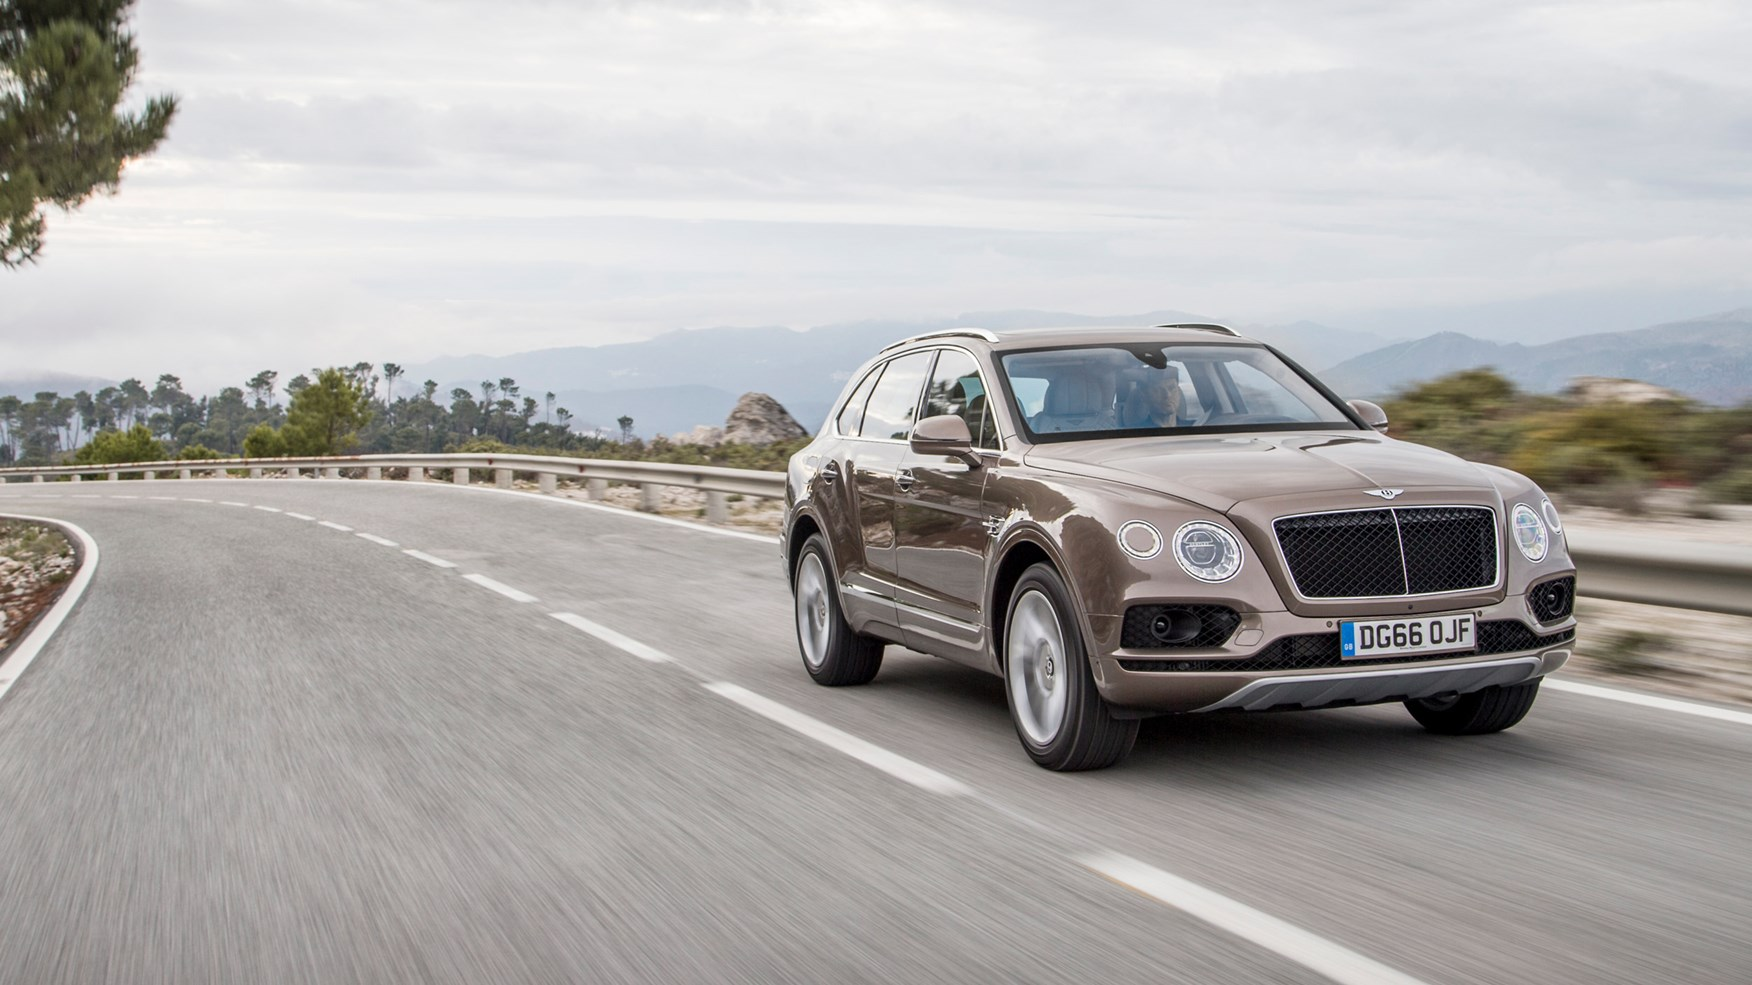 bentley bentayga lease deals with Bentley Bentayga Diesel 2017 Review on In The Autoblog Garage 2010 Ford Fusion Sport besides Don Garlits Dodge Challenger Drag Pak as well Ferrari 599xx At Laguna Seca together with Audi A1 Sportback Concept 2 as well Ferrari 599xx At Laguna Seca.